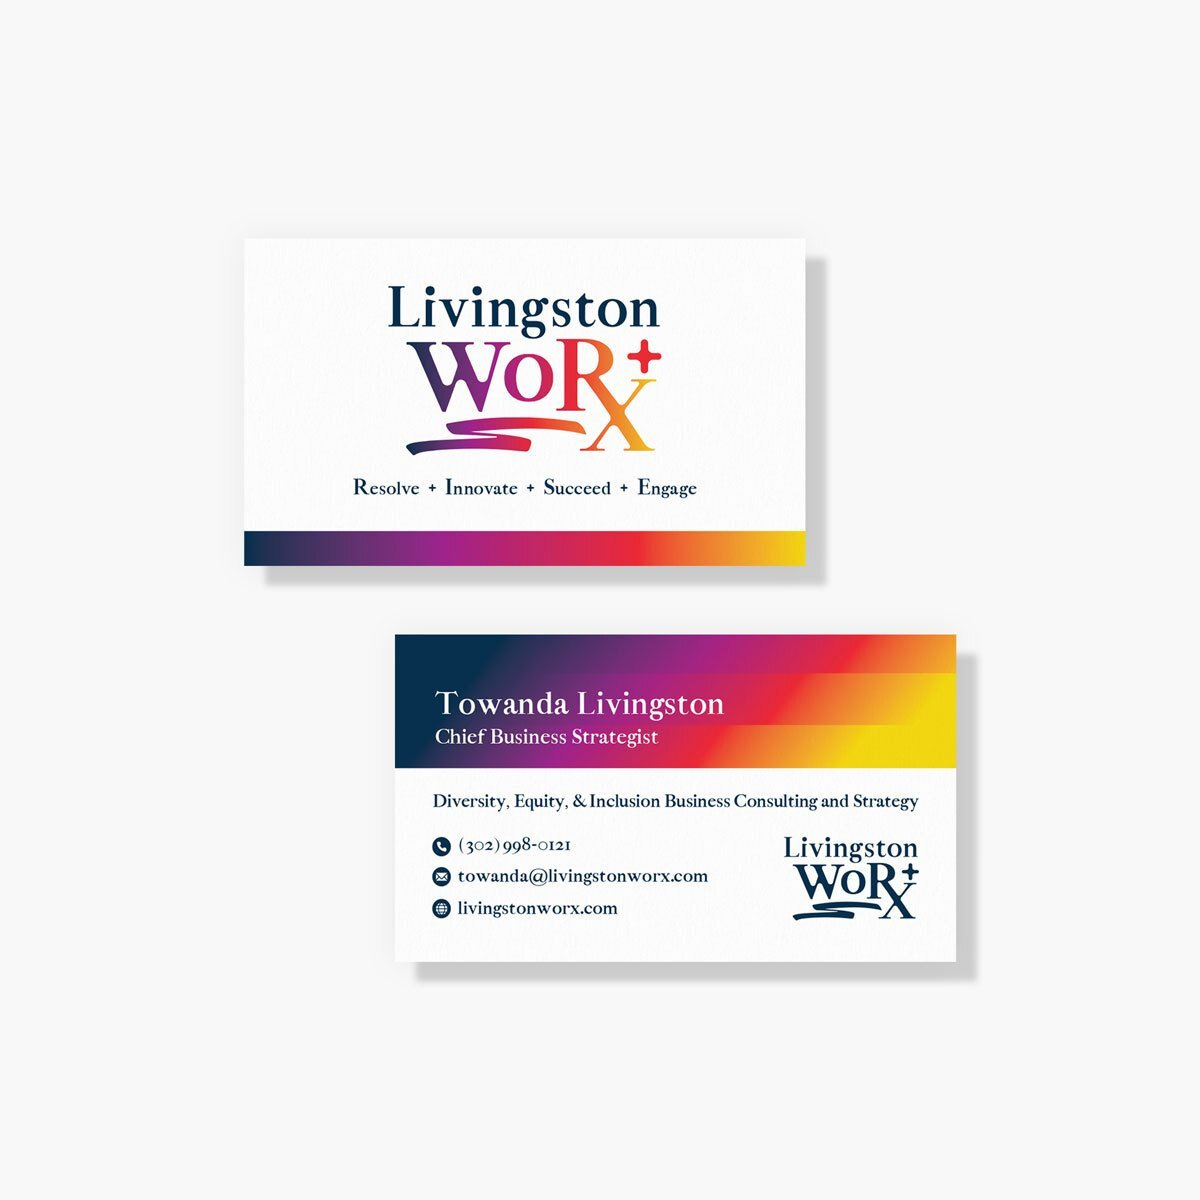 Livingston WoRX Business Cards Design by BrandSwan, a graphic design company